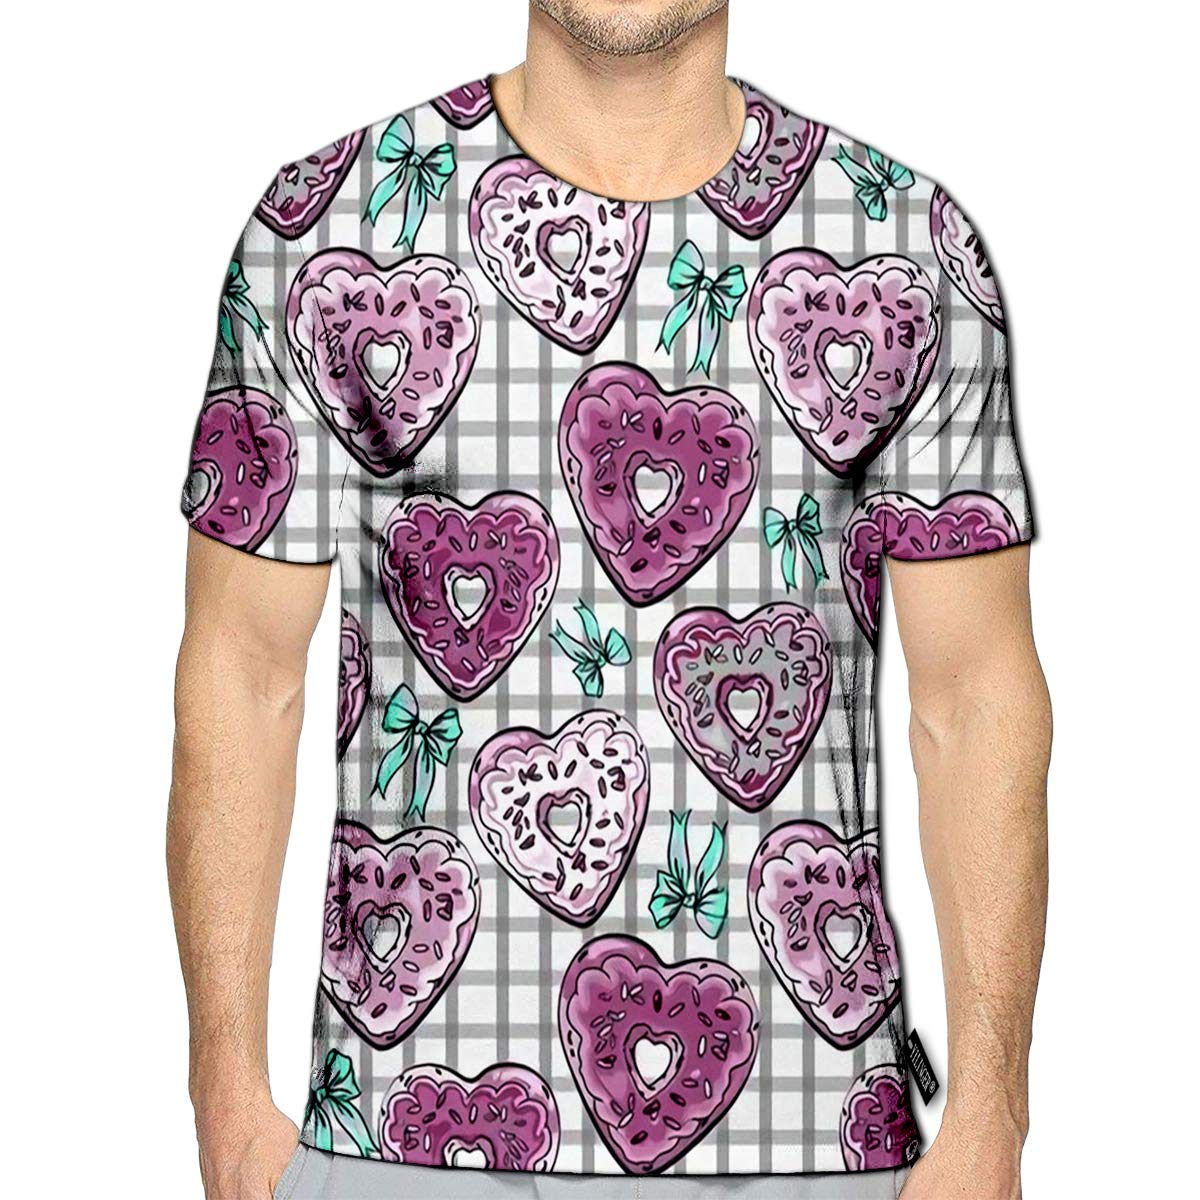 3D Printed T Shirts Donuts Heart Shape On Check Vintage Casual Mens Hipster Top Tees